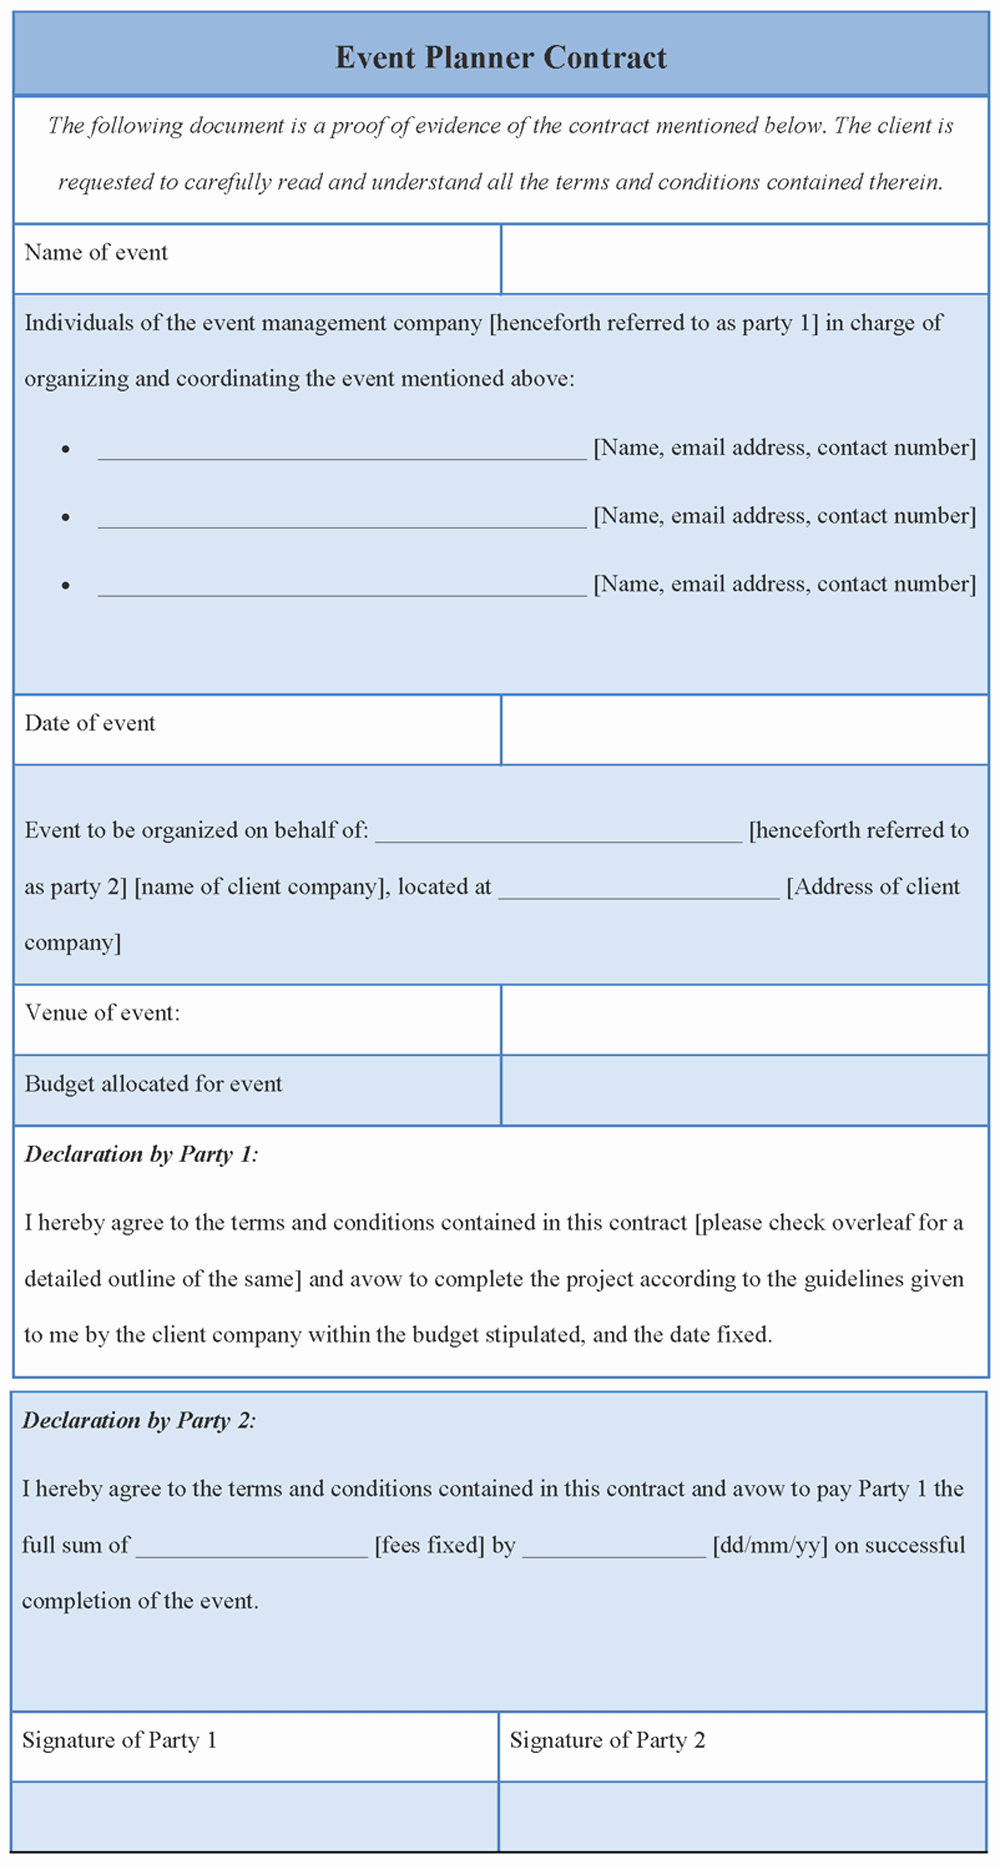 Event Planning Contract Template Luxury Contract Template for event Planner format Of event